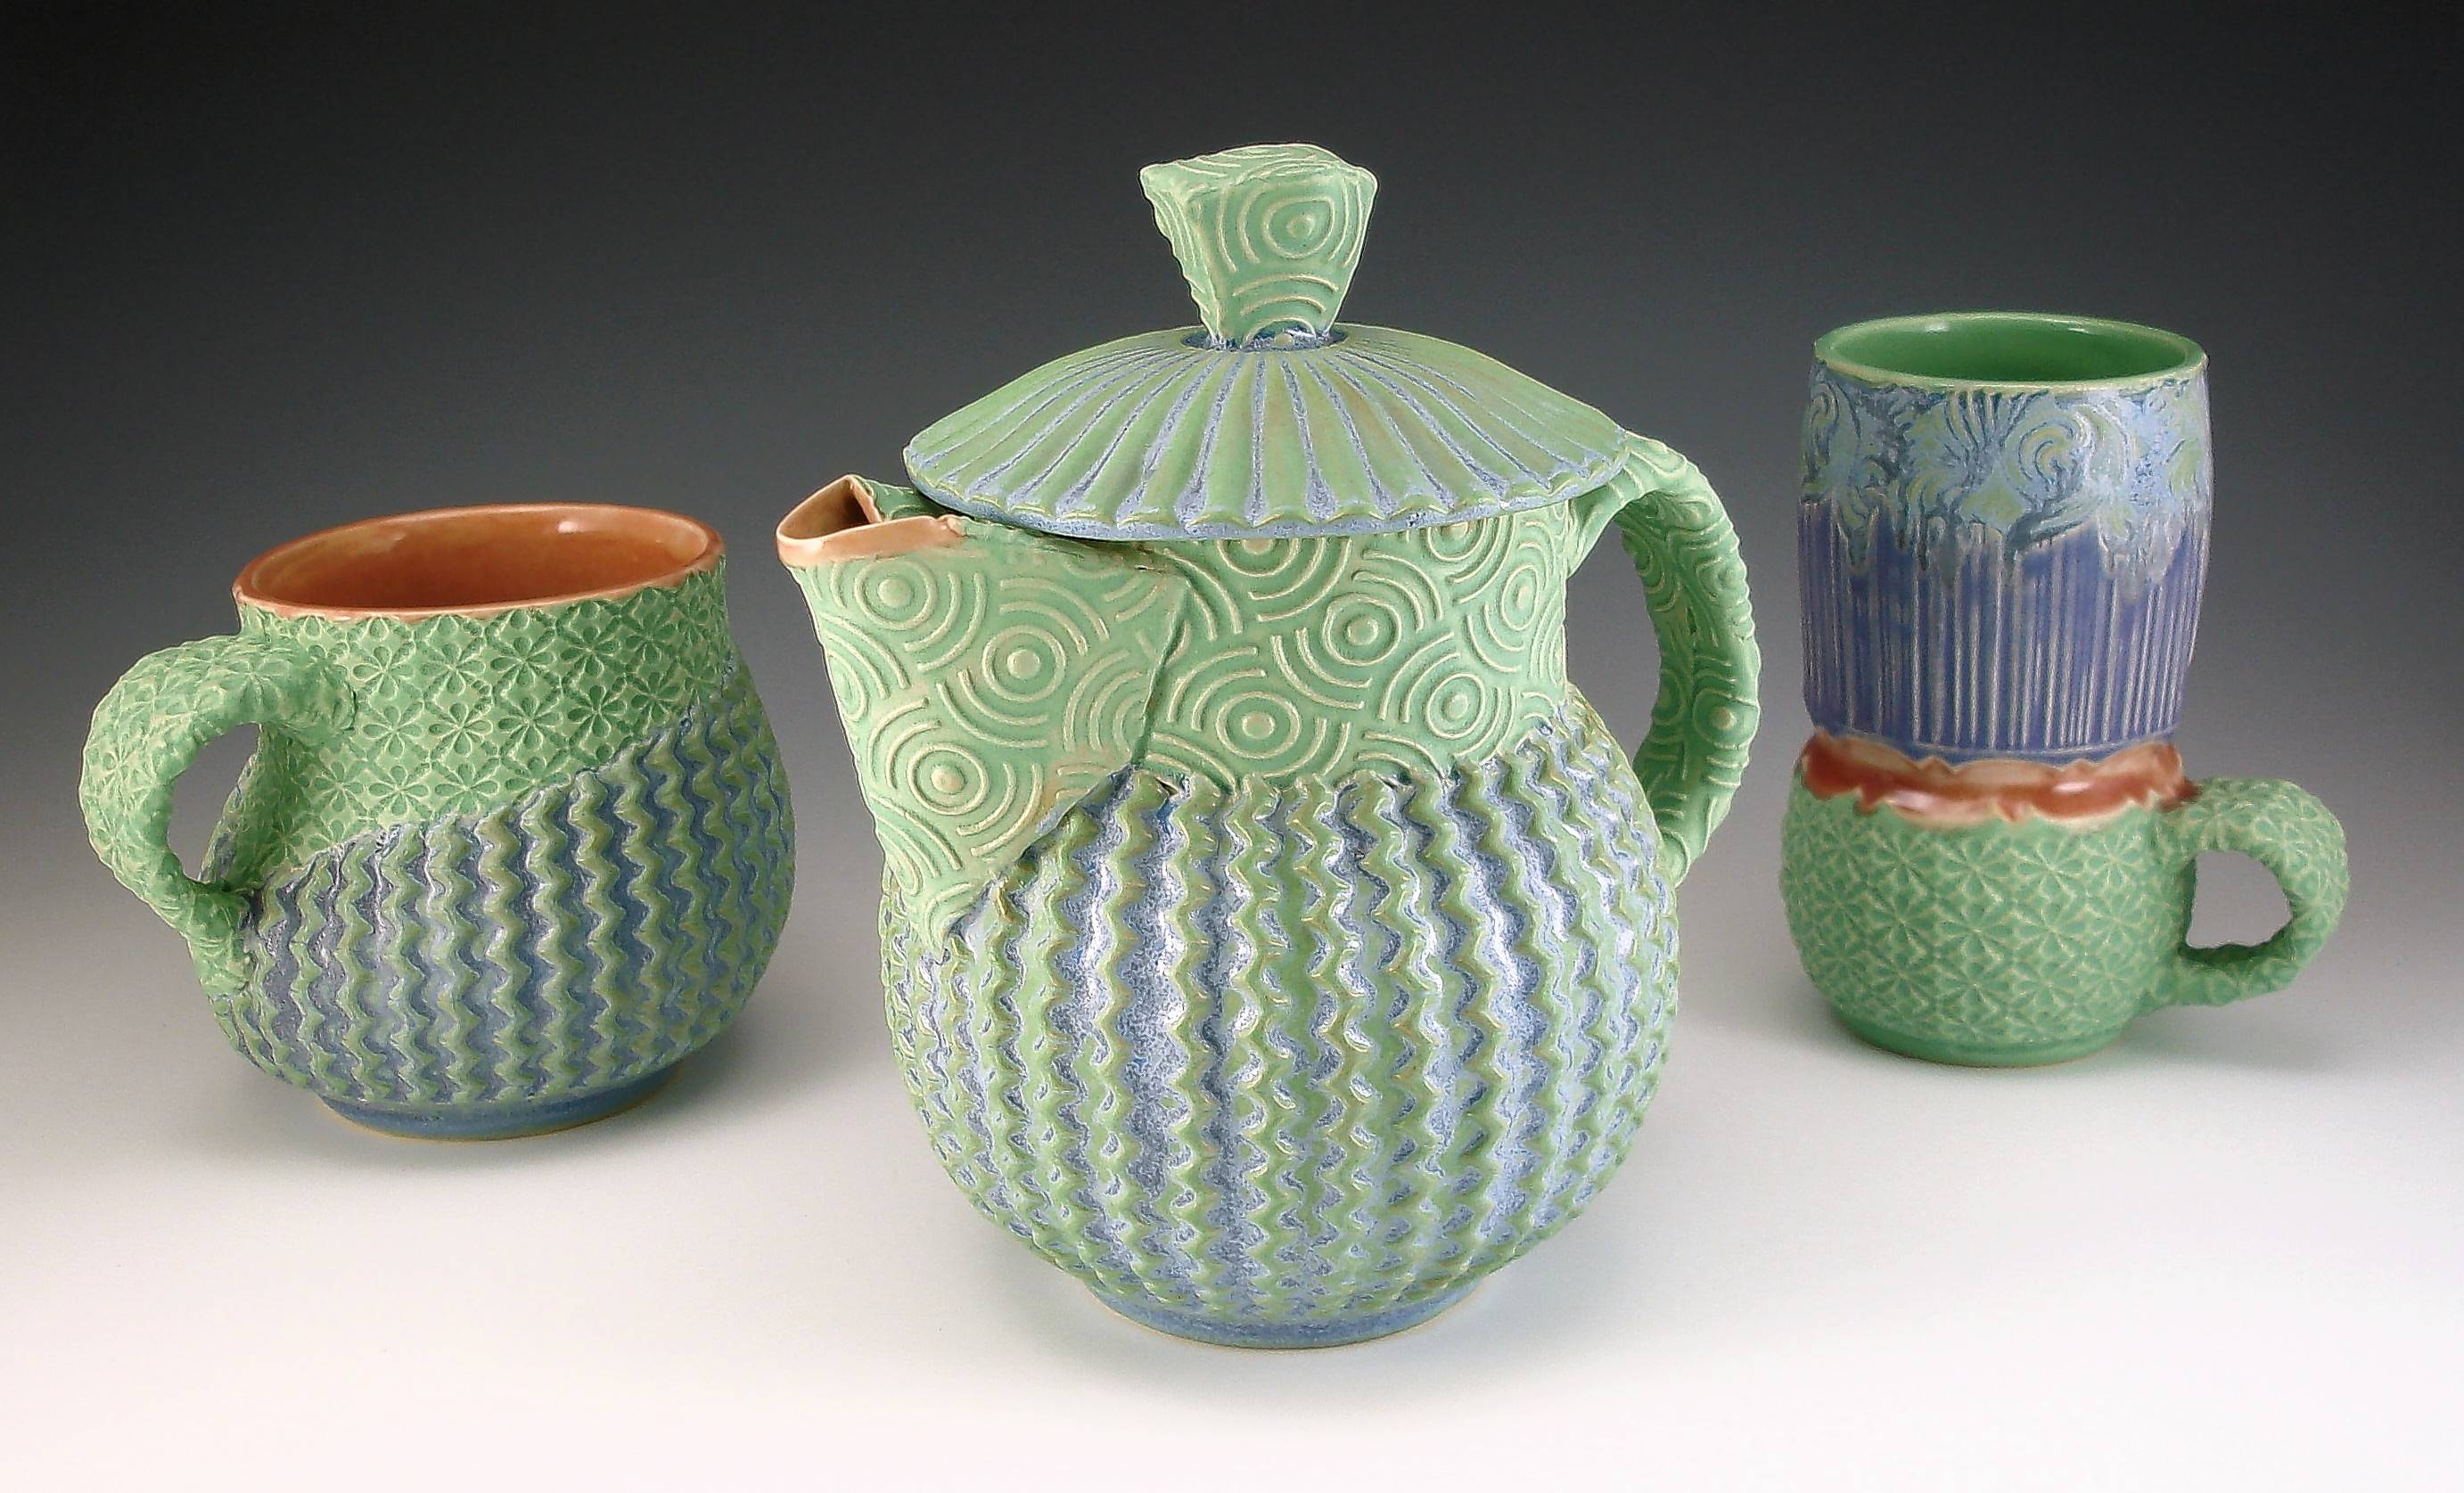 A pitcher and two cups are examples of work by Annie Chrietzburg who will discuss her process at a hands-on pottery workshop Sept. 29-30 at McHenry County College.